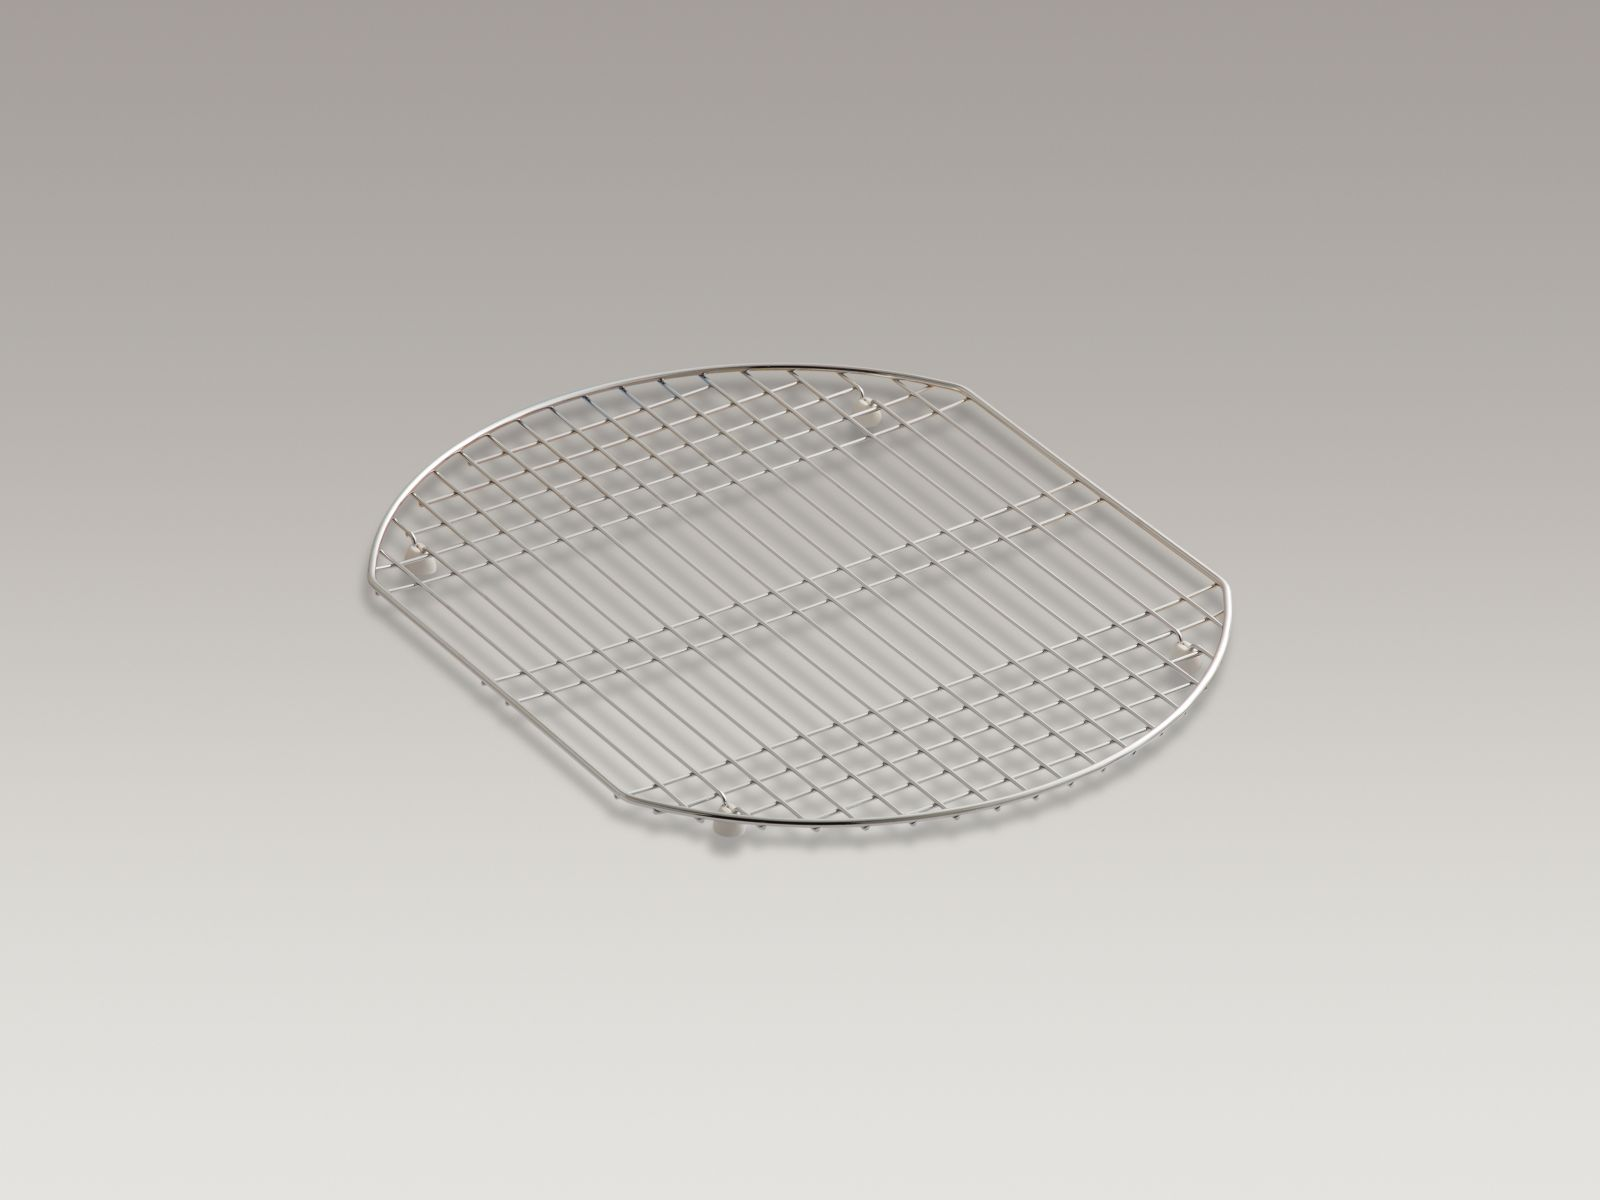 Kohler Entrée™ K-6006-ST Bottom bowl rack for use in Entrée sink Stainless Steel